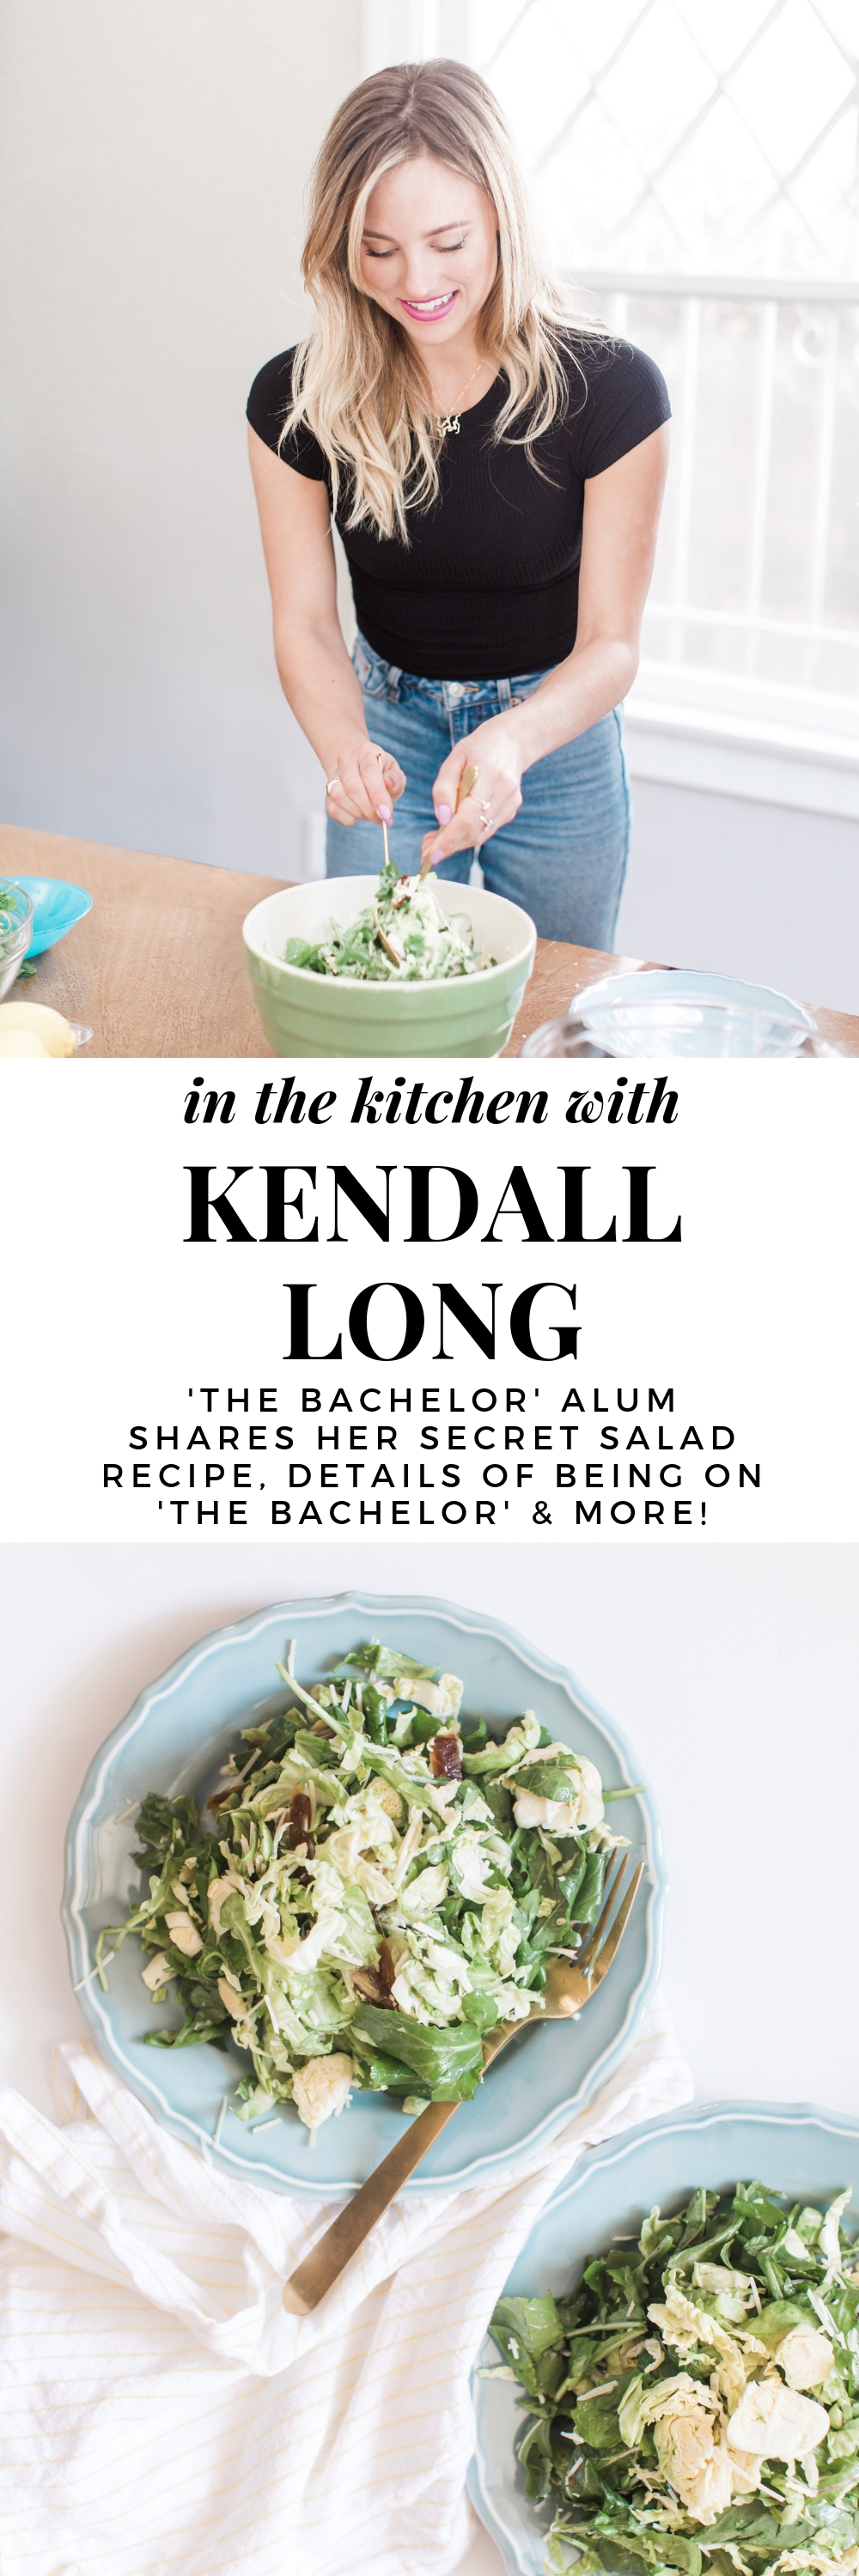 the bachelor kendall long interview